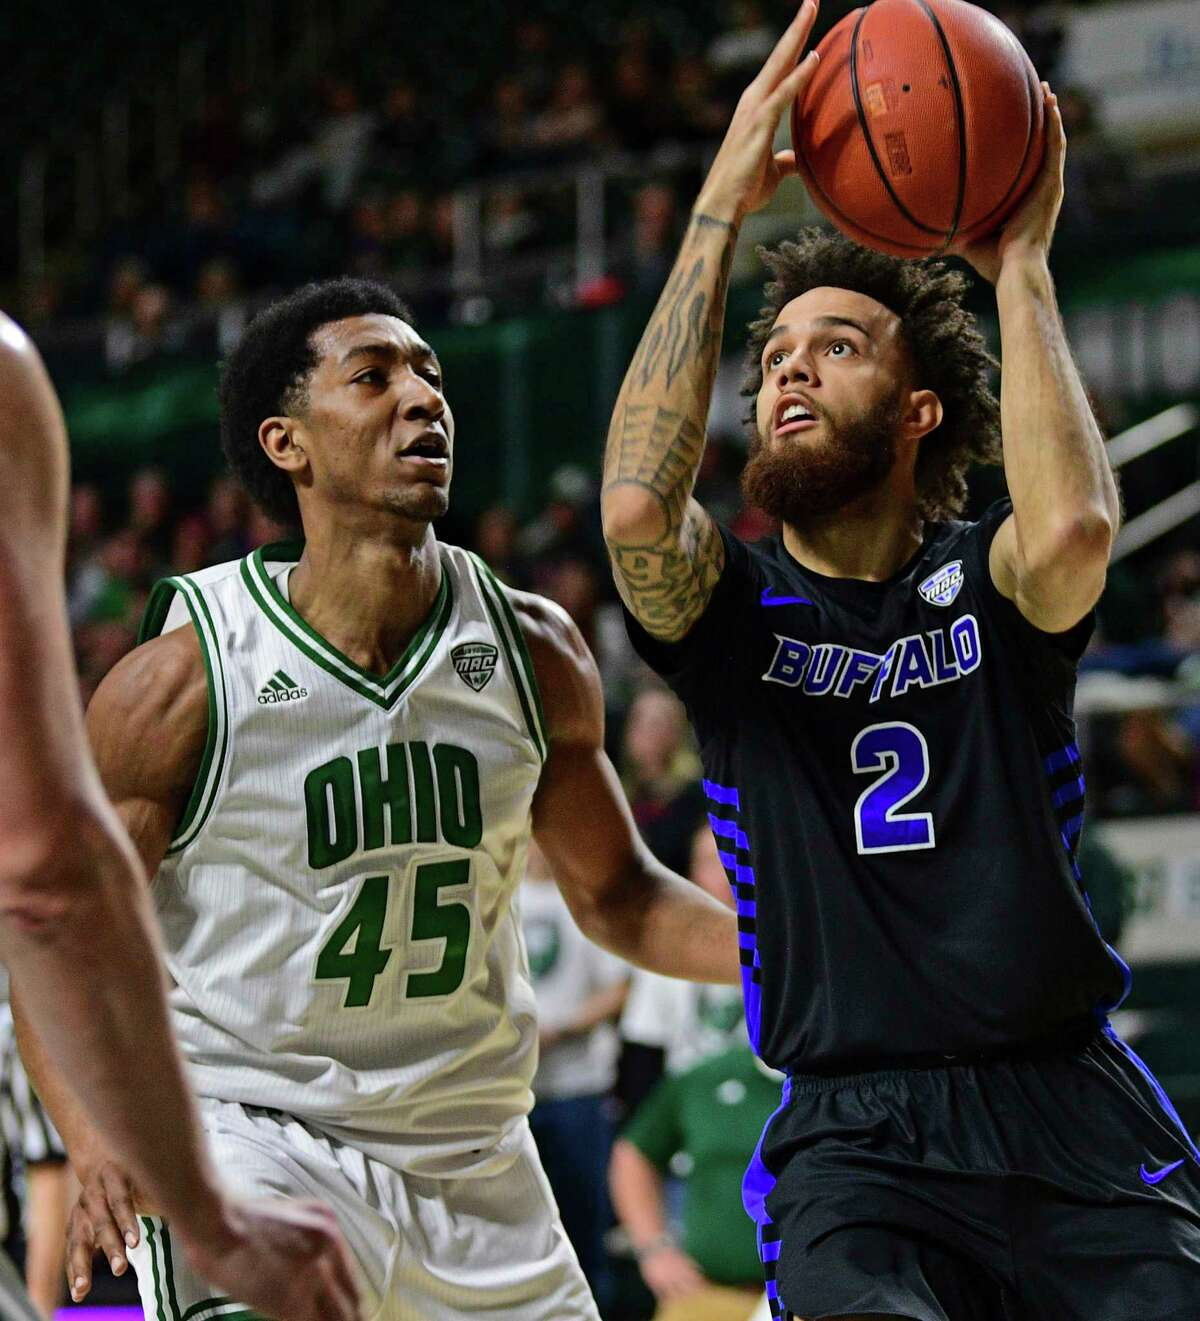 Buffalo guard Jeremy Harris shoots next to Ohio forward Doug Taylor during the second half of an NCAA college basketball game Tuesday, March 5, 2019, in Athens, Ohio. Buffalo won 82-79. (AP Photo/David Dermer)